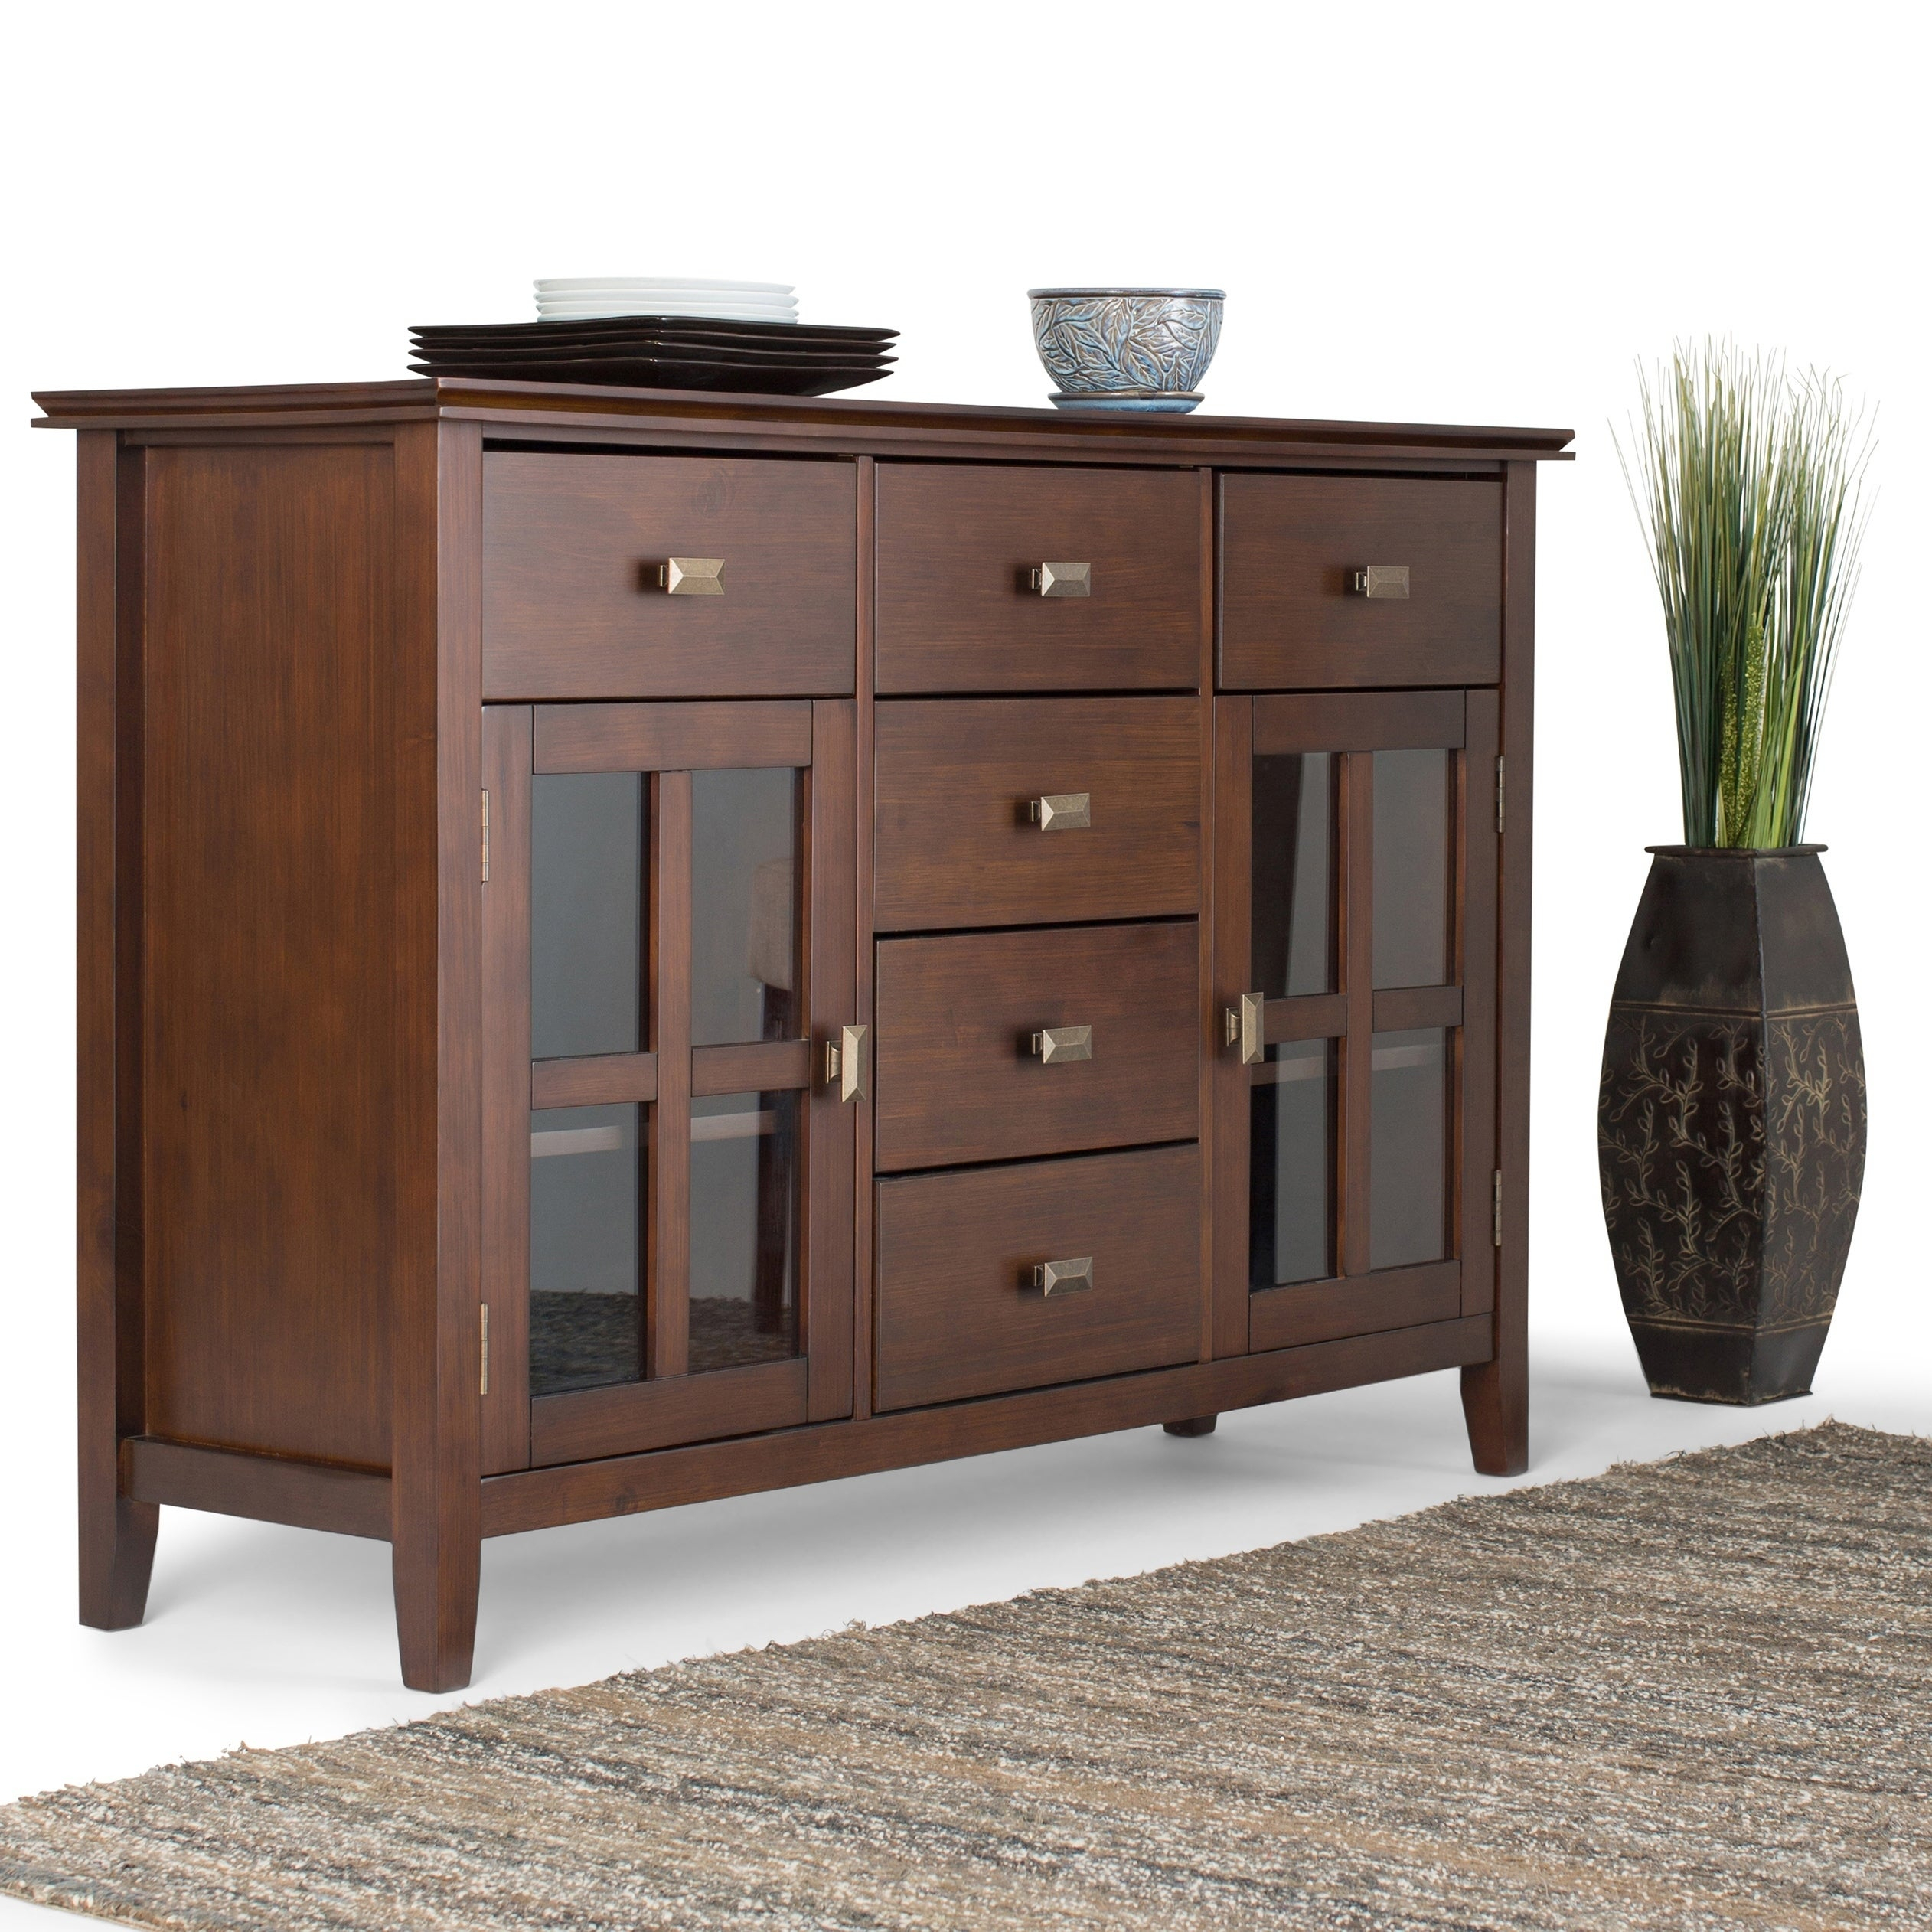 Wyndenhall Stratford Solid Wood 54 Inch Wide Contemporary Sideboard Buffet Credenza – 54 Inch Wide Regarding Solid Wood Contemporary Sideboards Buffets (View 30 of 30)